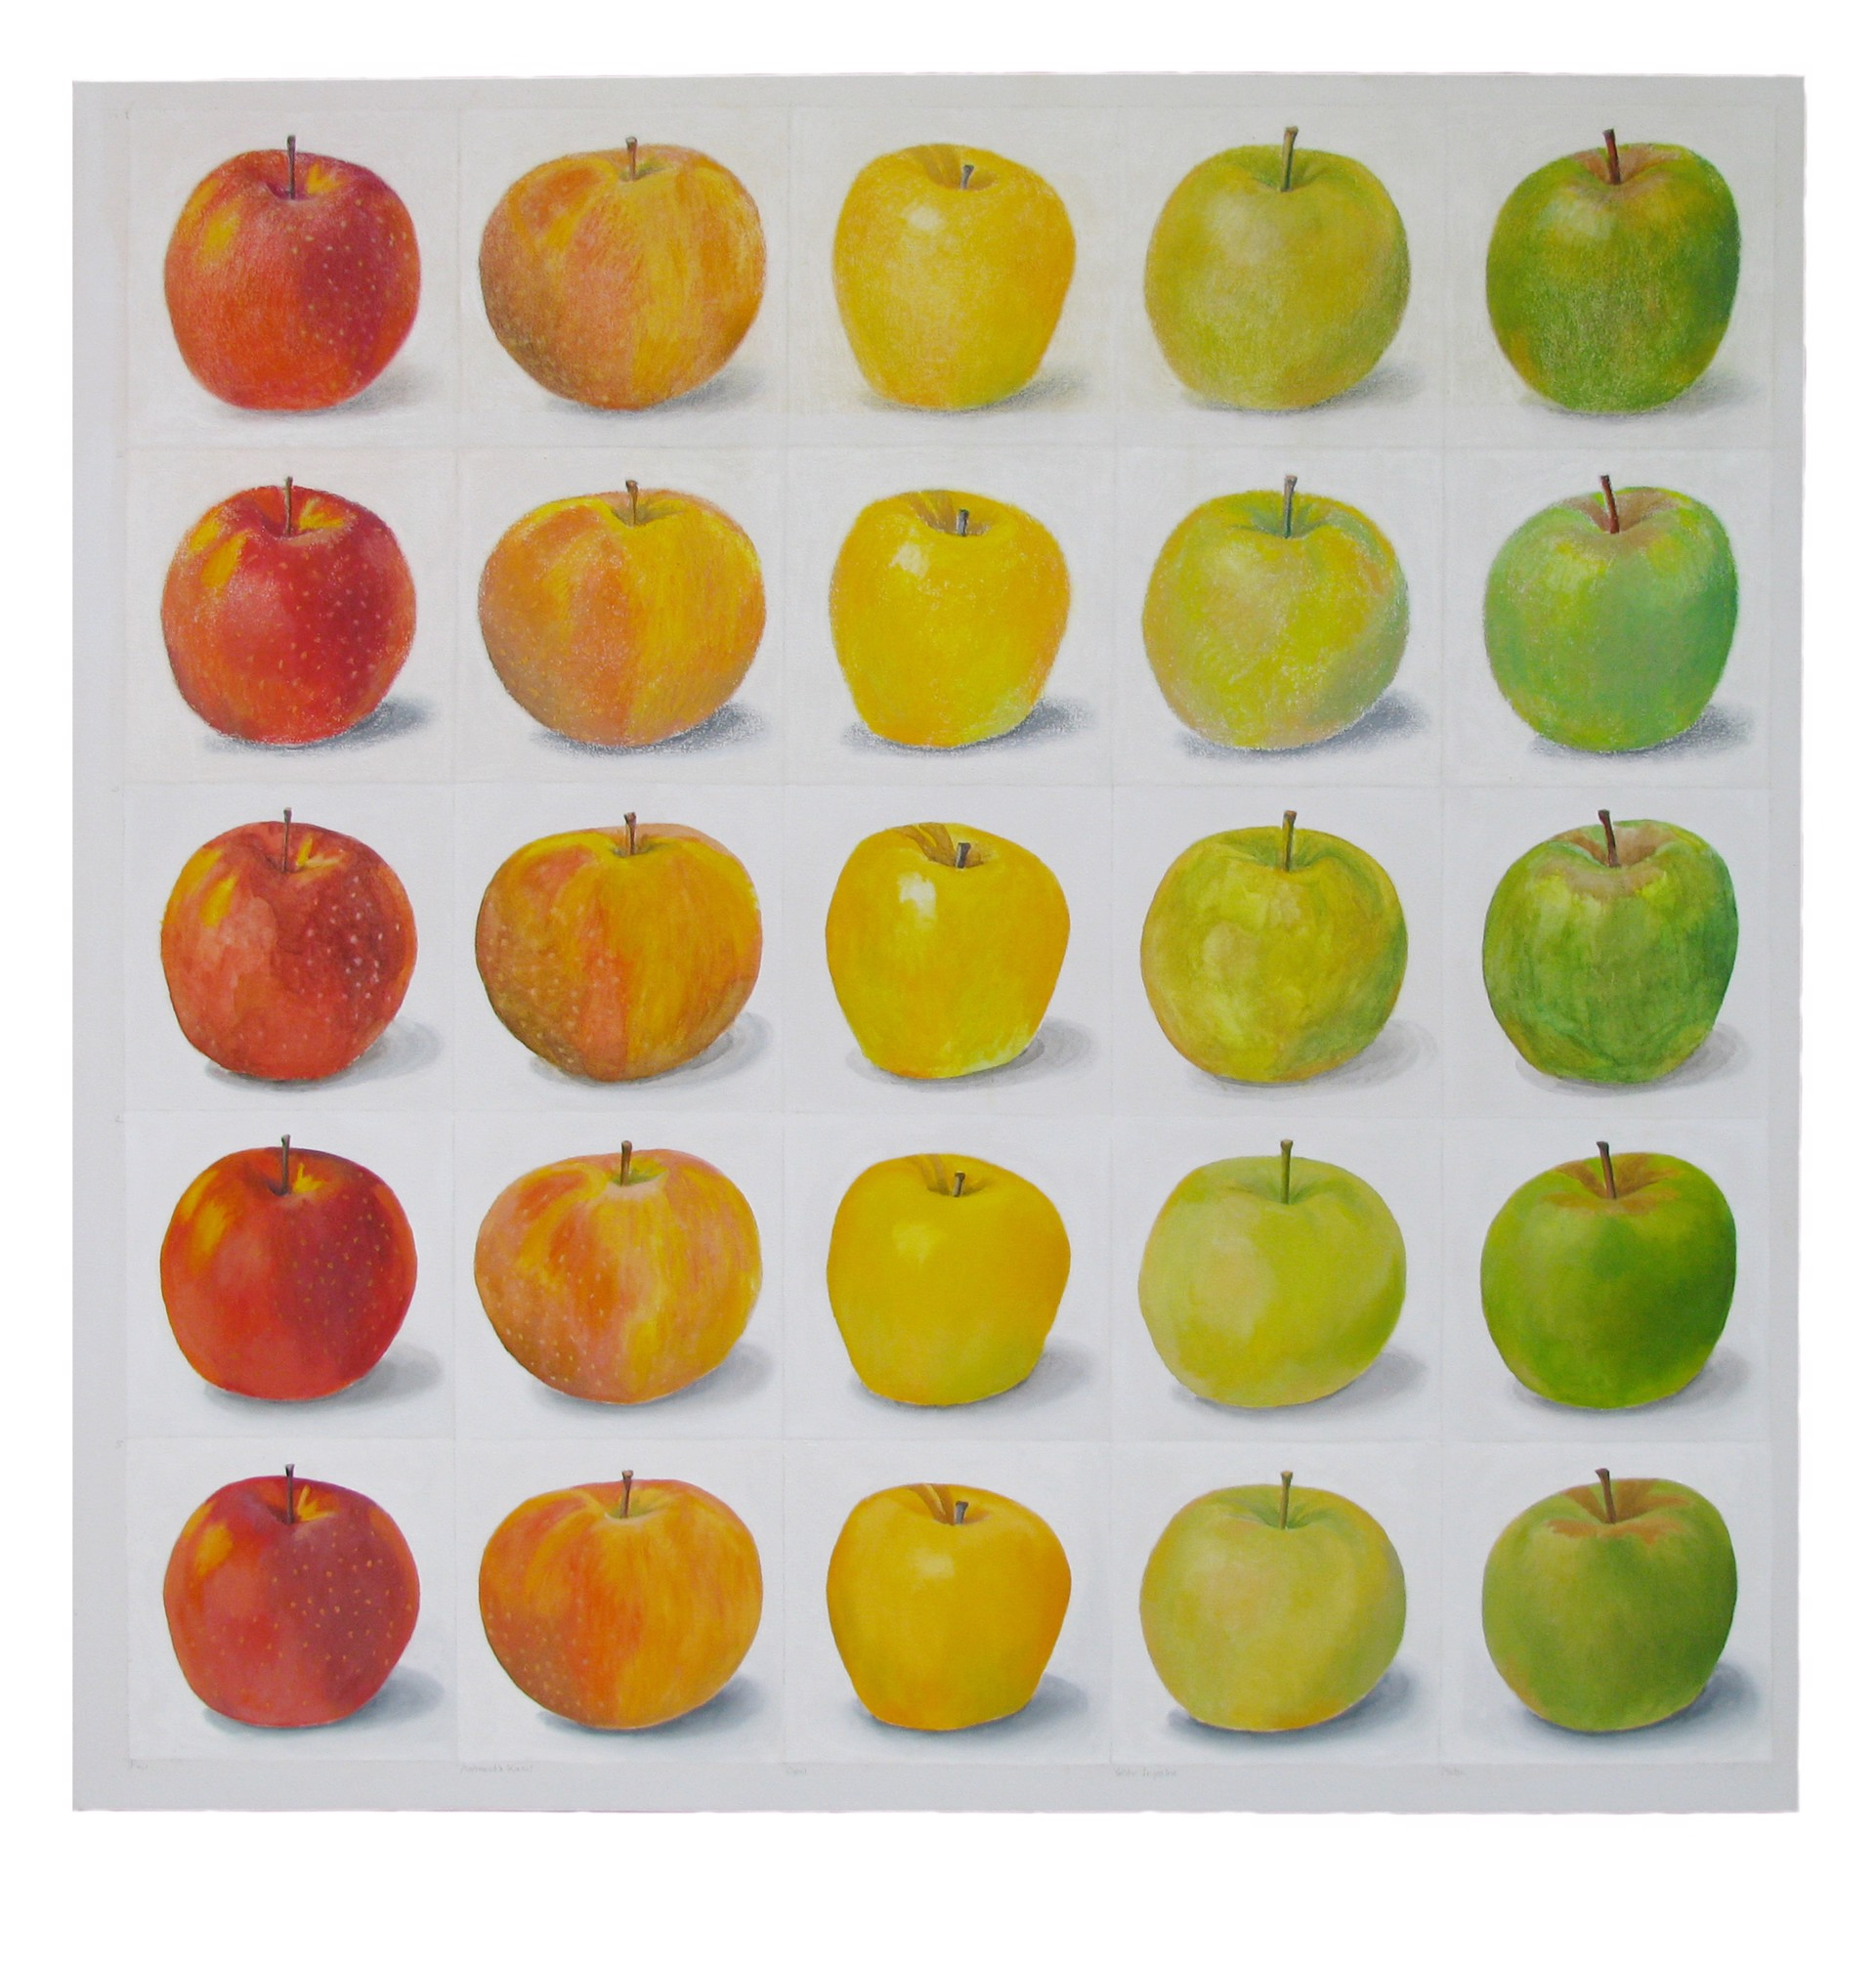 Apples Red to Green by Tom Shelton